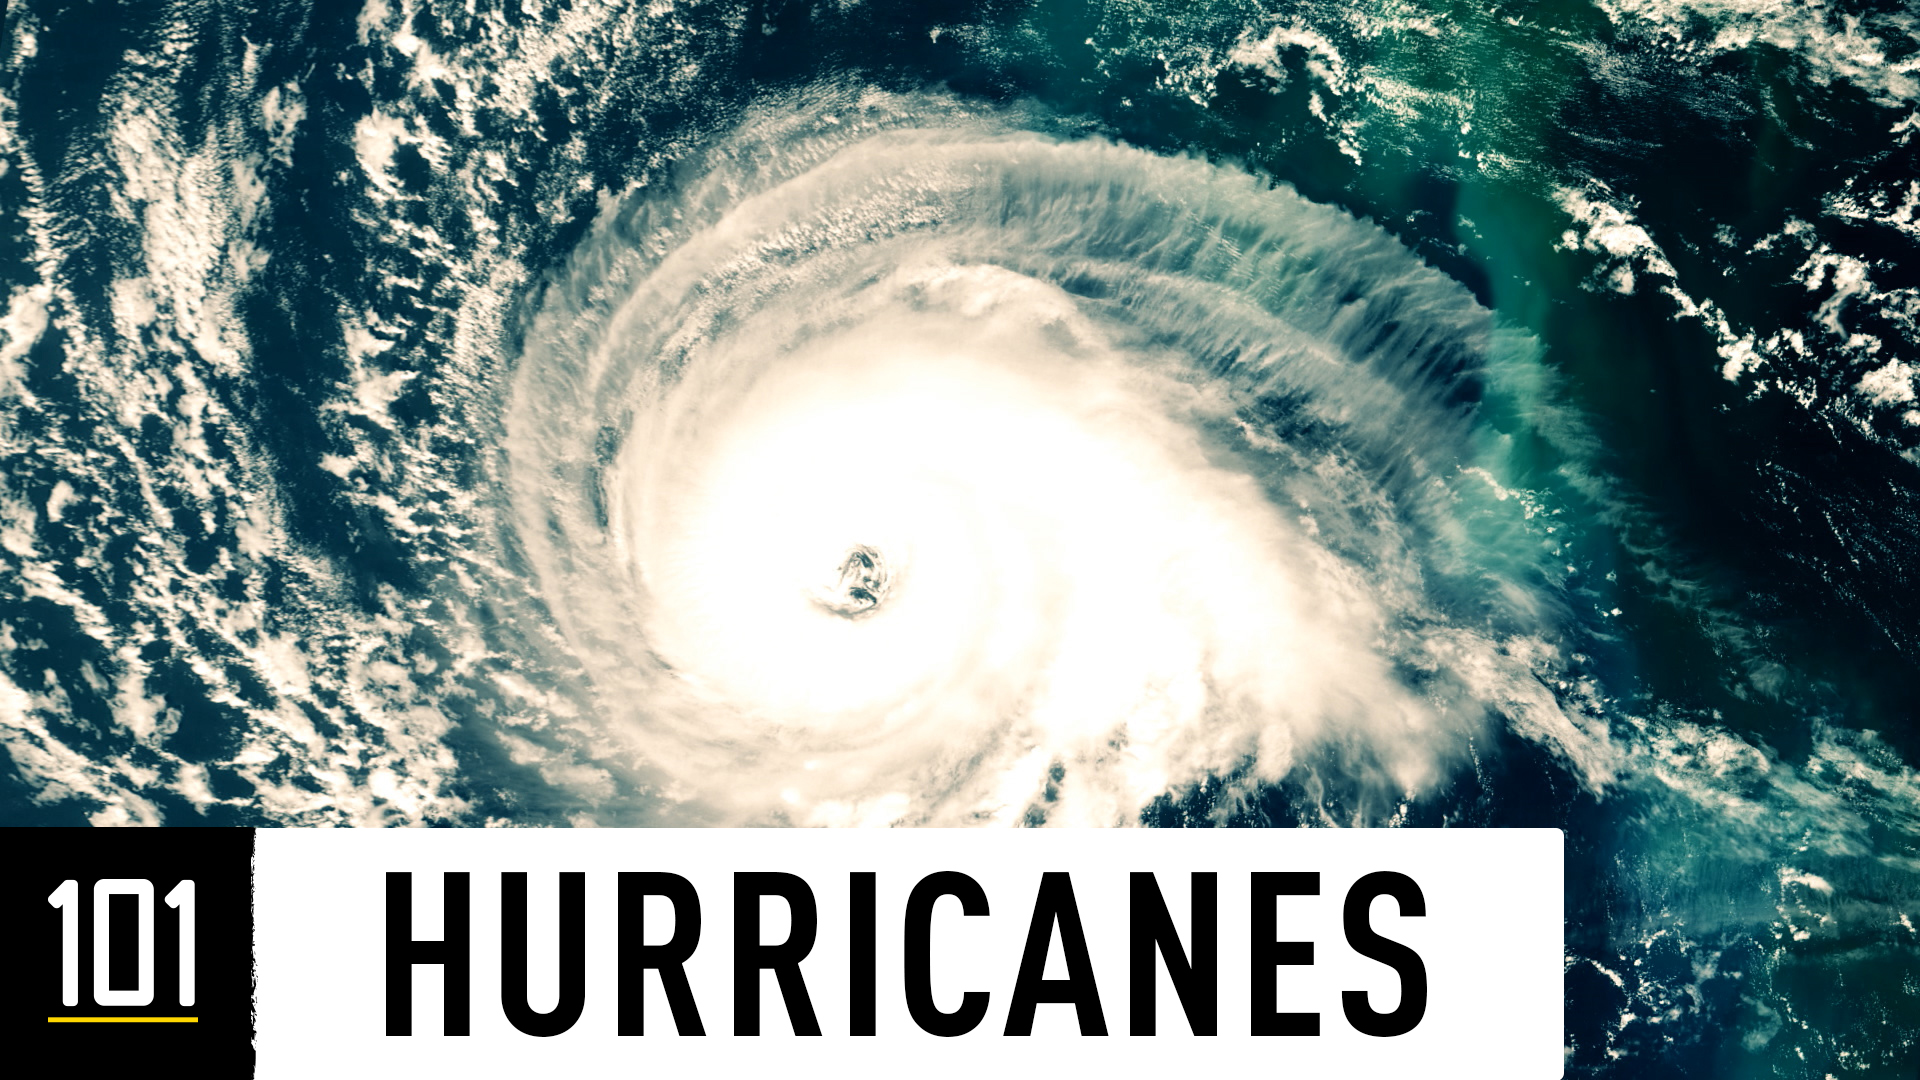 Information About Hurricanes For Kids